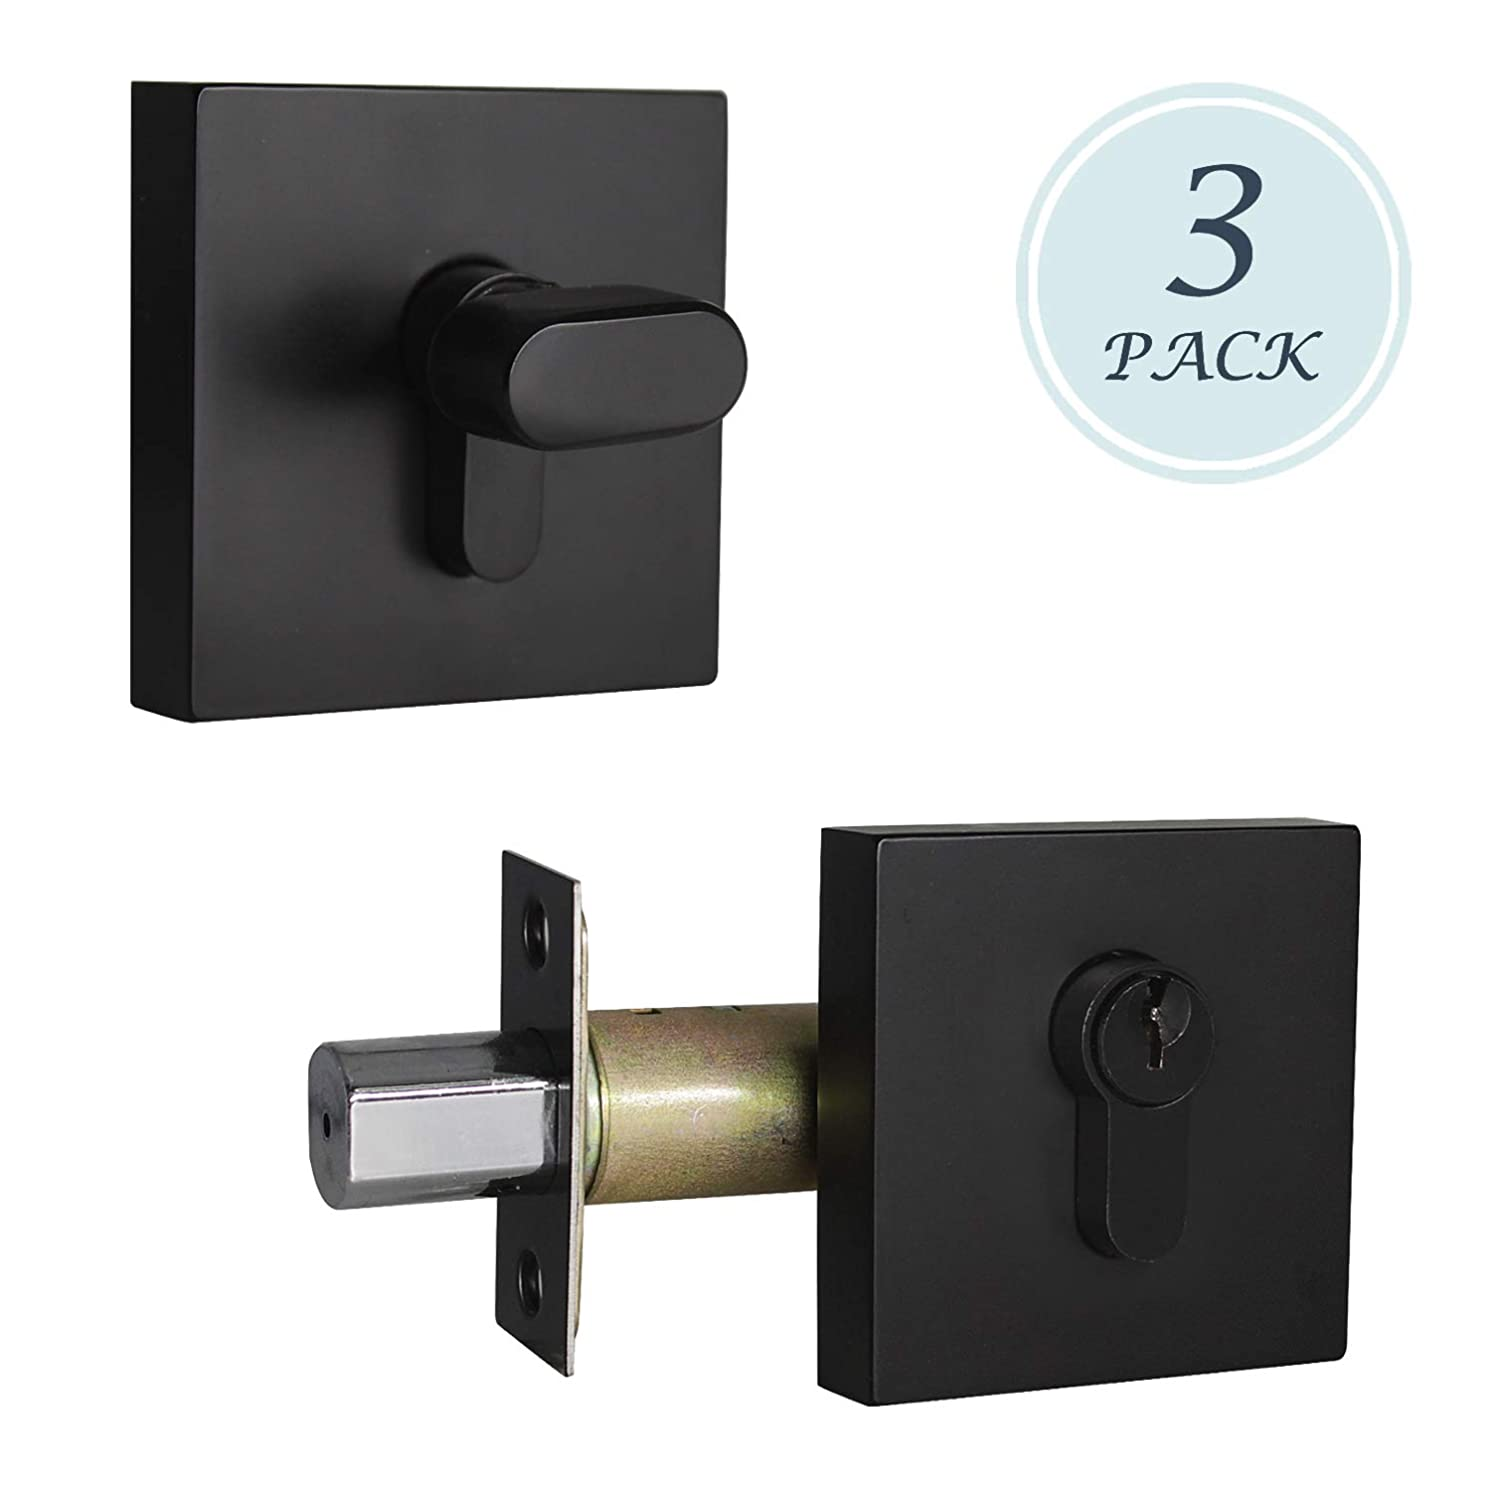 Square Single Cylinder Deadbolts, Black Deadbolts Lockset for Exterior Doors/Entry Lock/Front Gate, 3 Pack, Keyed Outside & Thumb Turn Inside, Not Keyed Alike